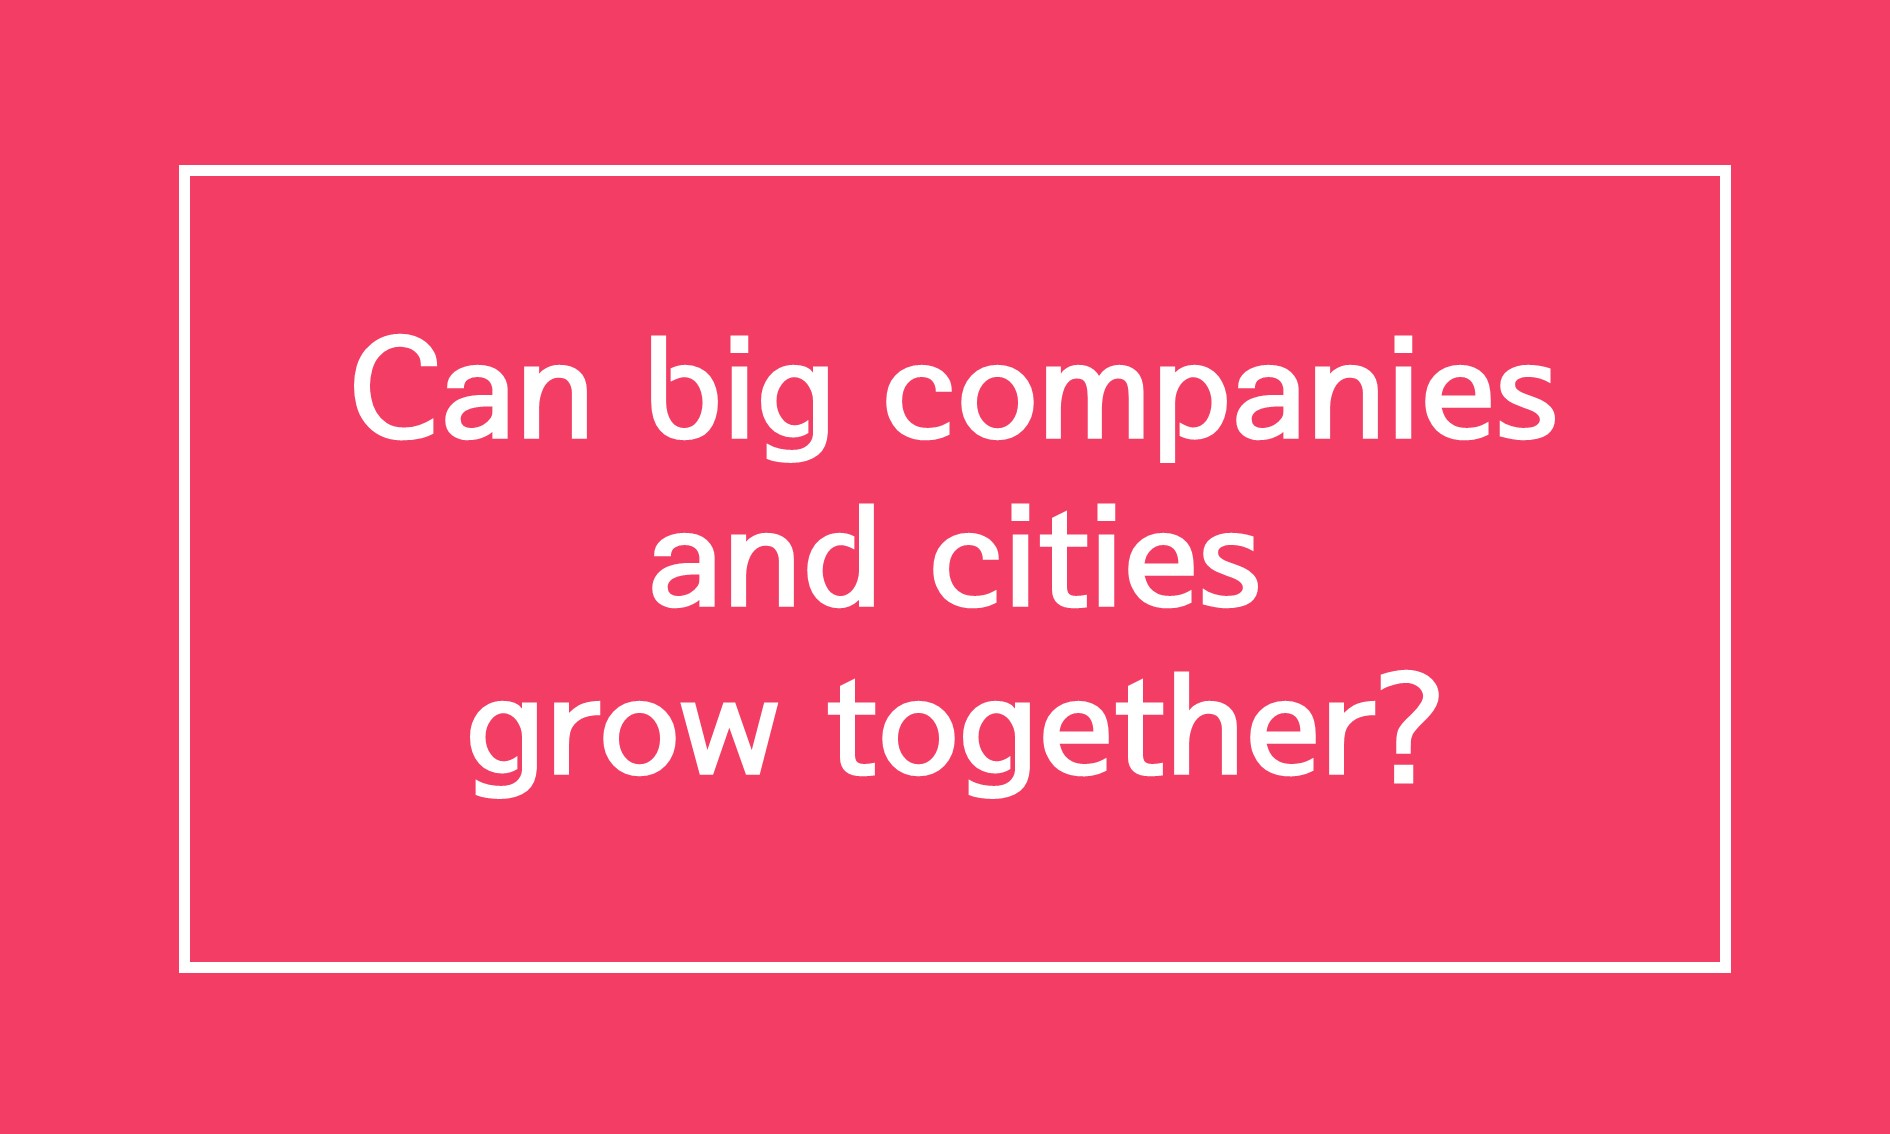 [Oversea News] Can big companies and cities grow together?